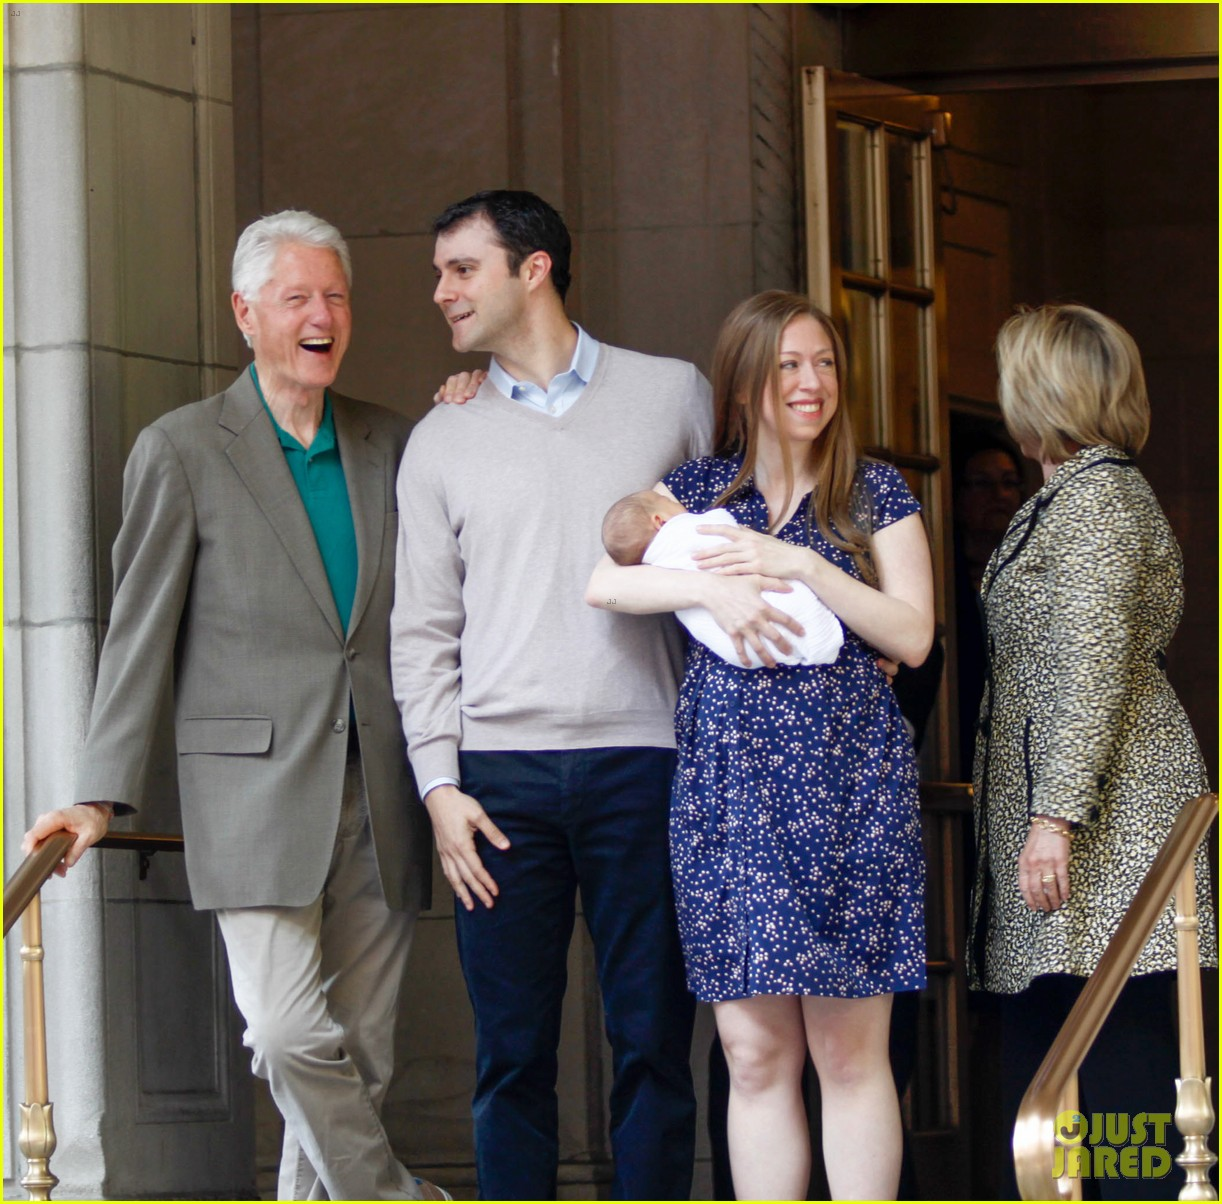 Chelsea clinton and family leaving lenox hill hospital with baby